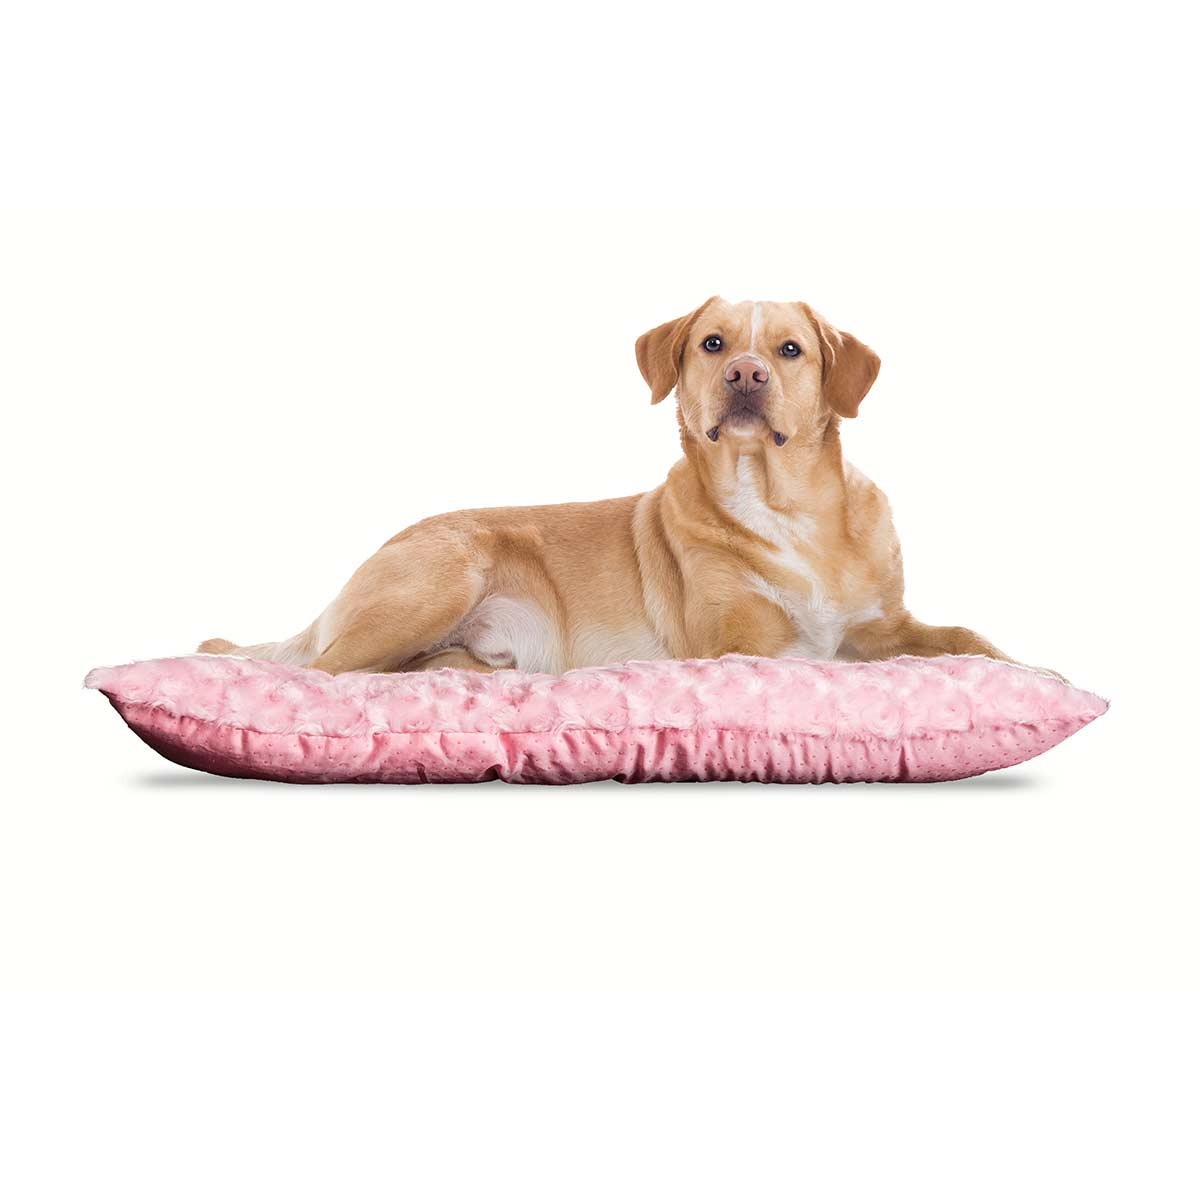 Pillow beds for dogs